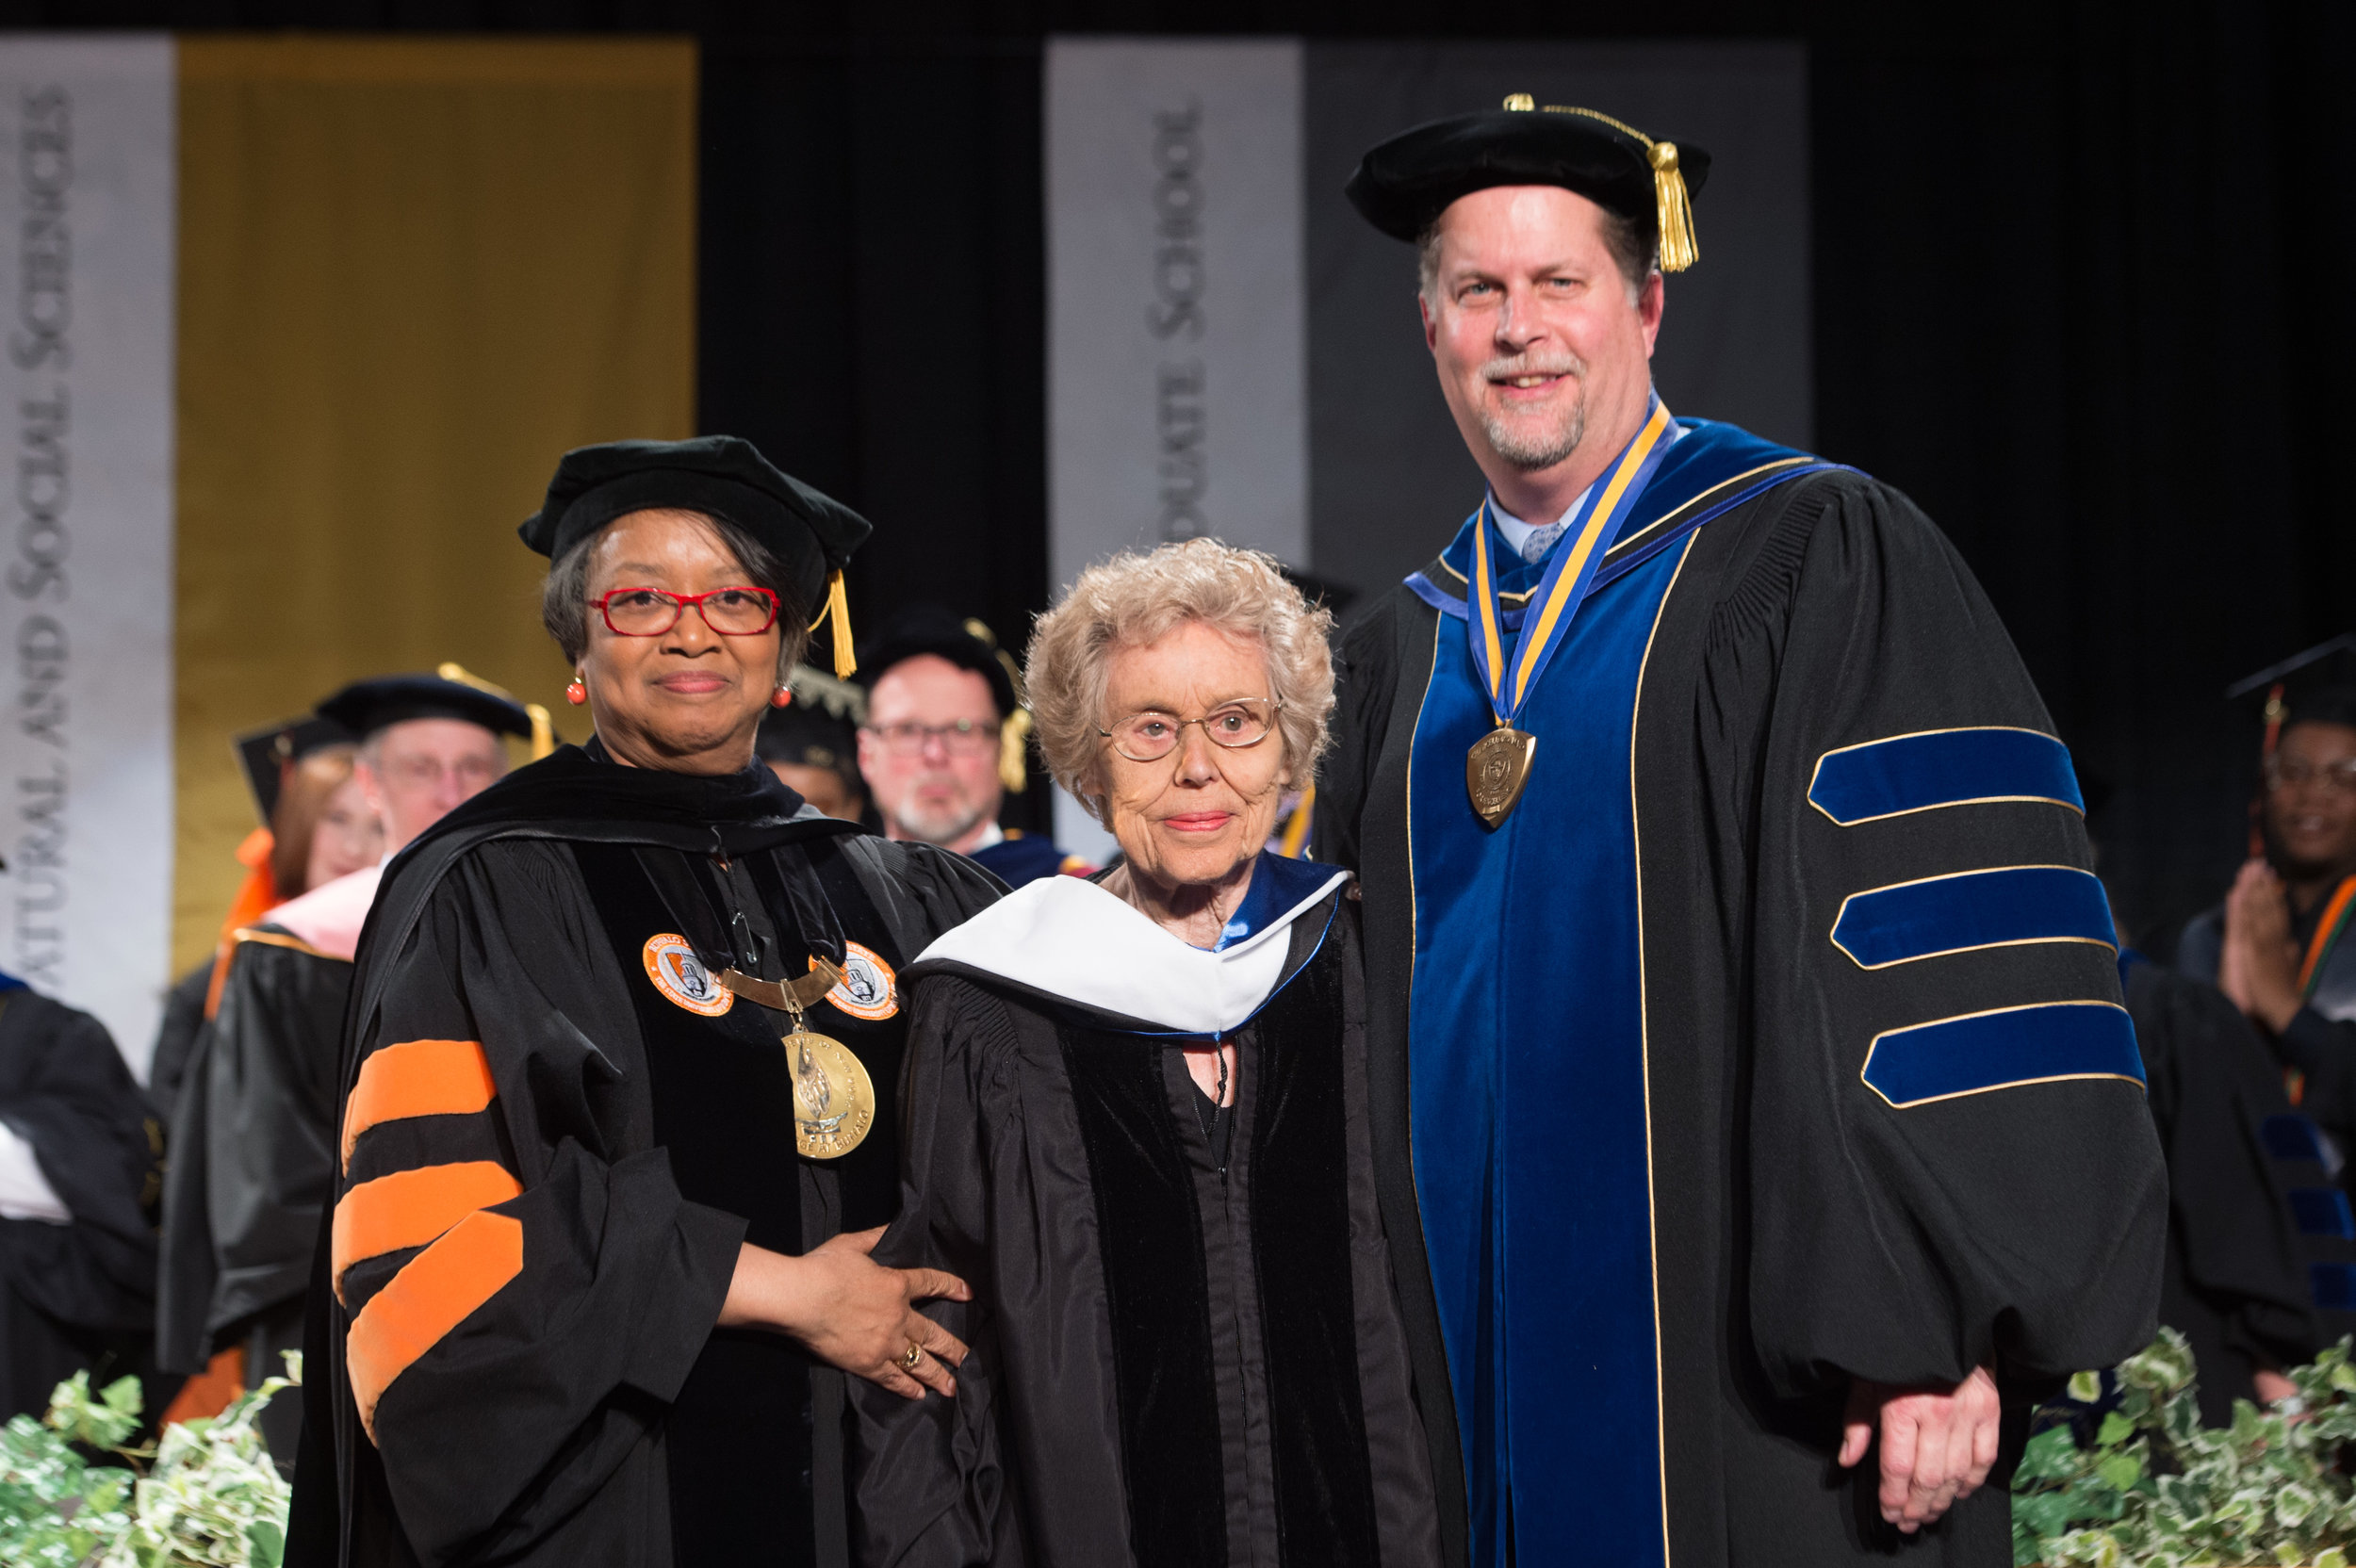 Sophia receiving a SUNY Honorary Doctorate at Buffalo State's May 2019 Commencement ceremony.  Pictured left to right: President Conway-Turner, Sophia Veffer, and Interim Provost Mayrose.